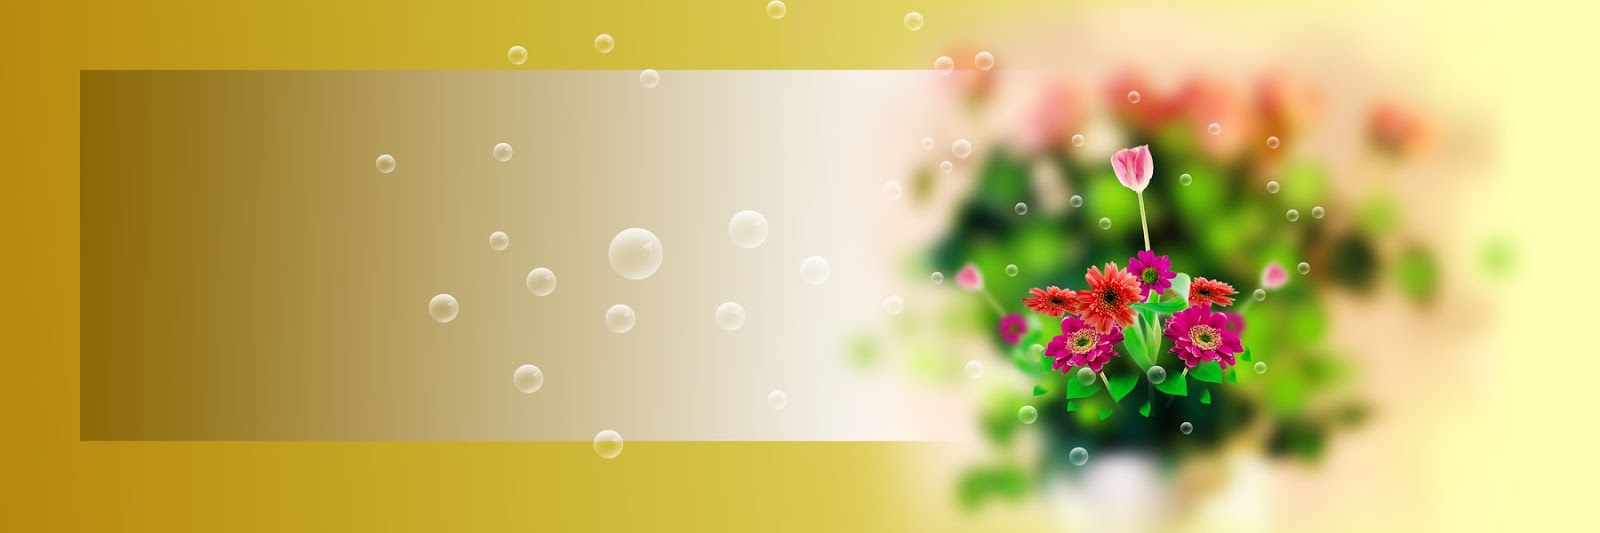 photoshop birthday background images ; 04